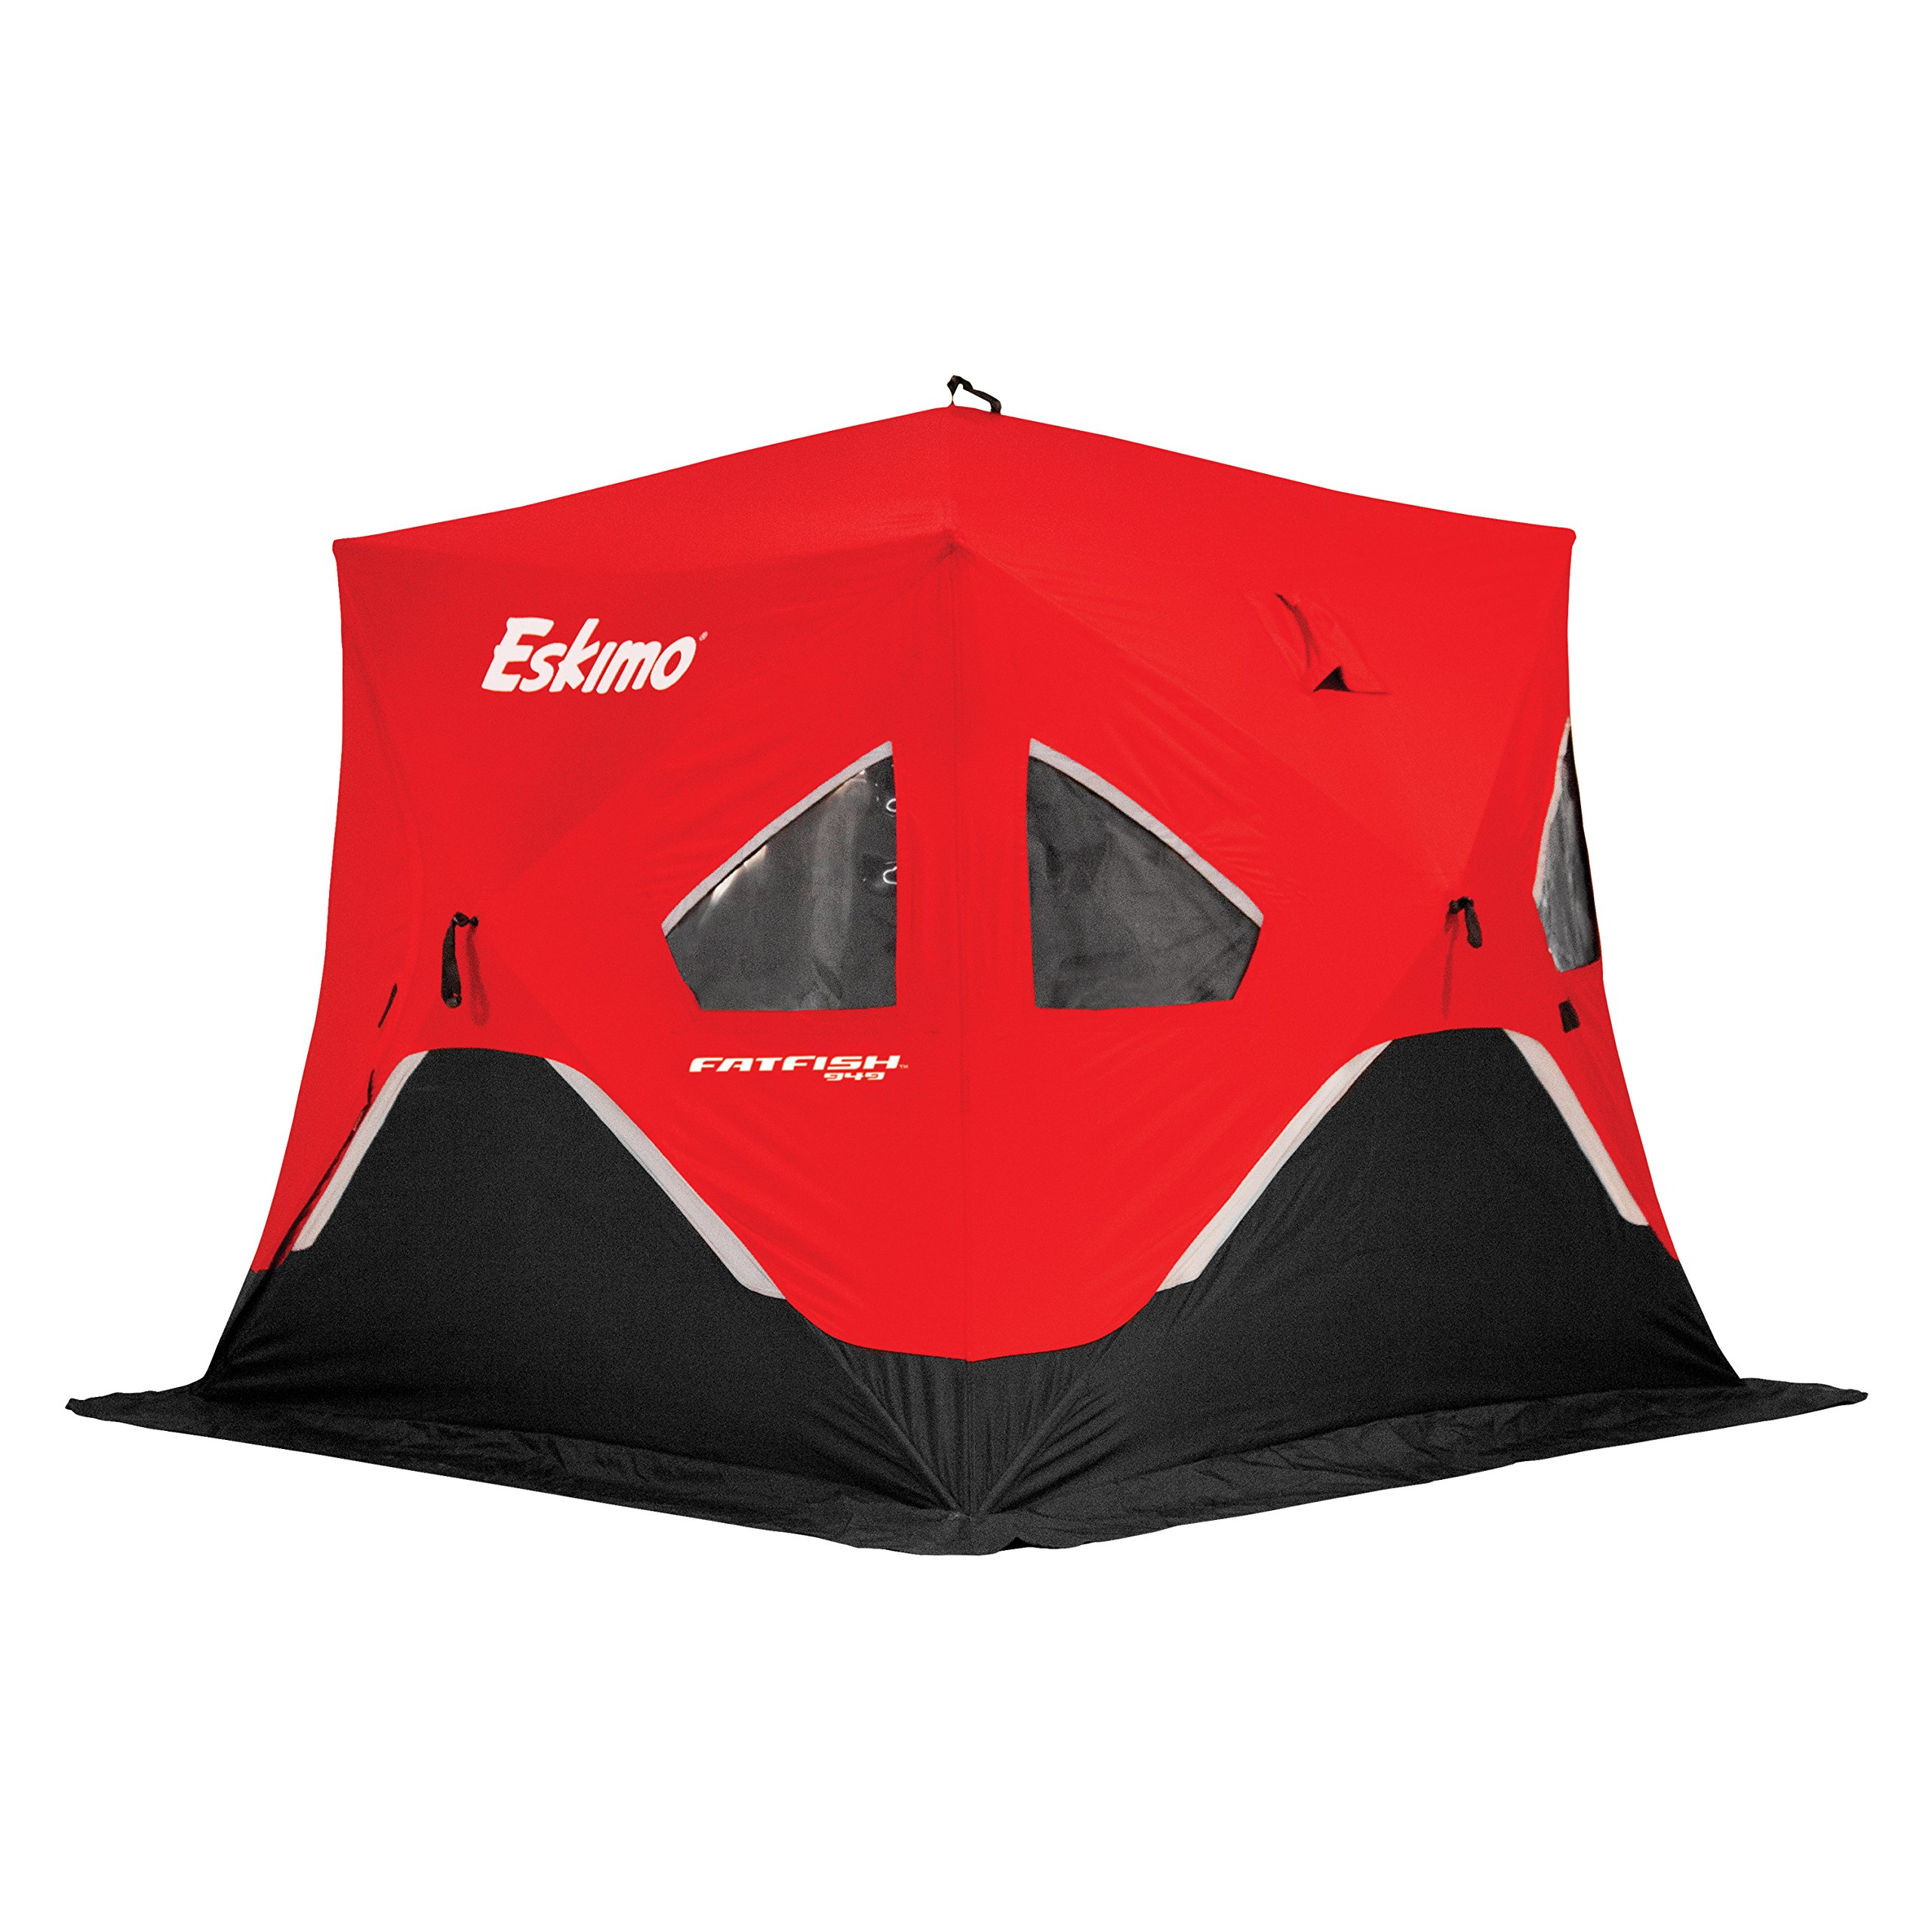 Eskimo FF949 FatFish Pop-up Portable Ice Shelter, 3-4 Person